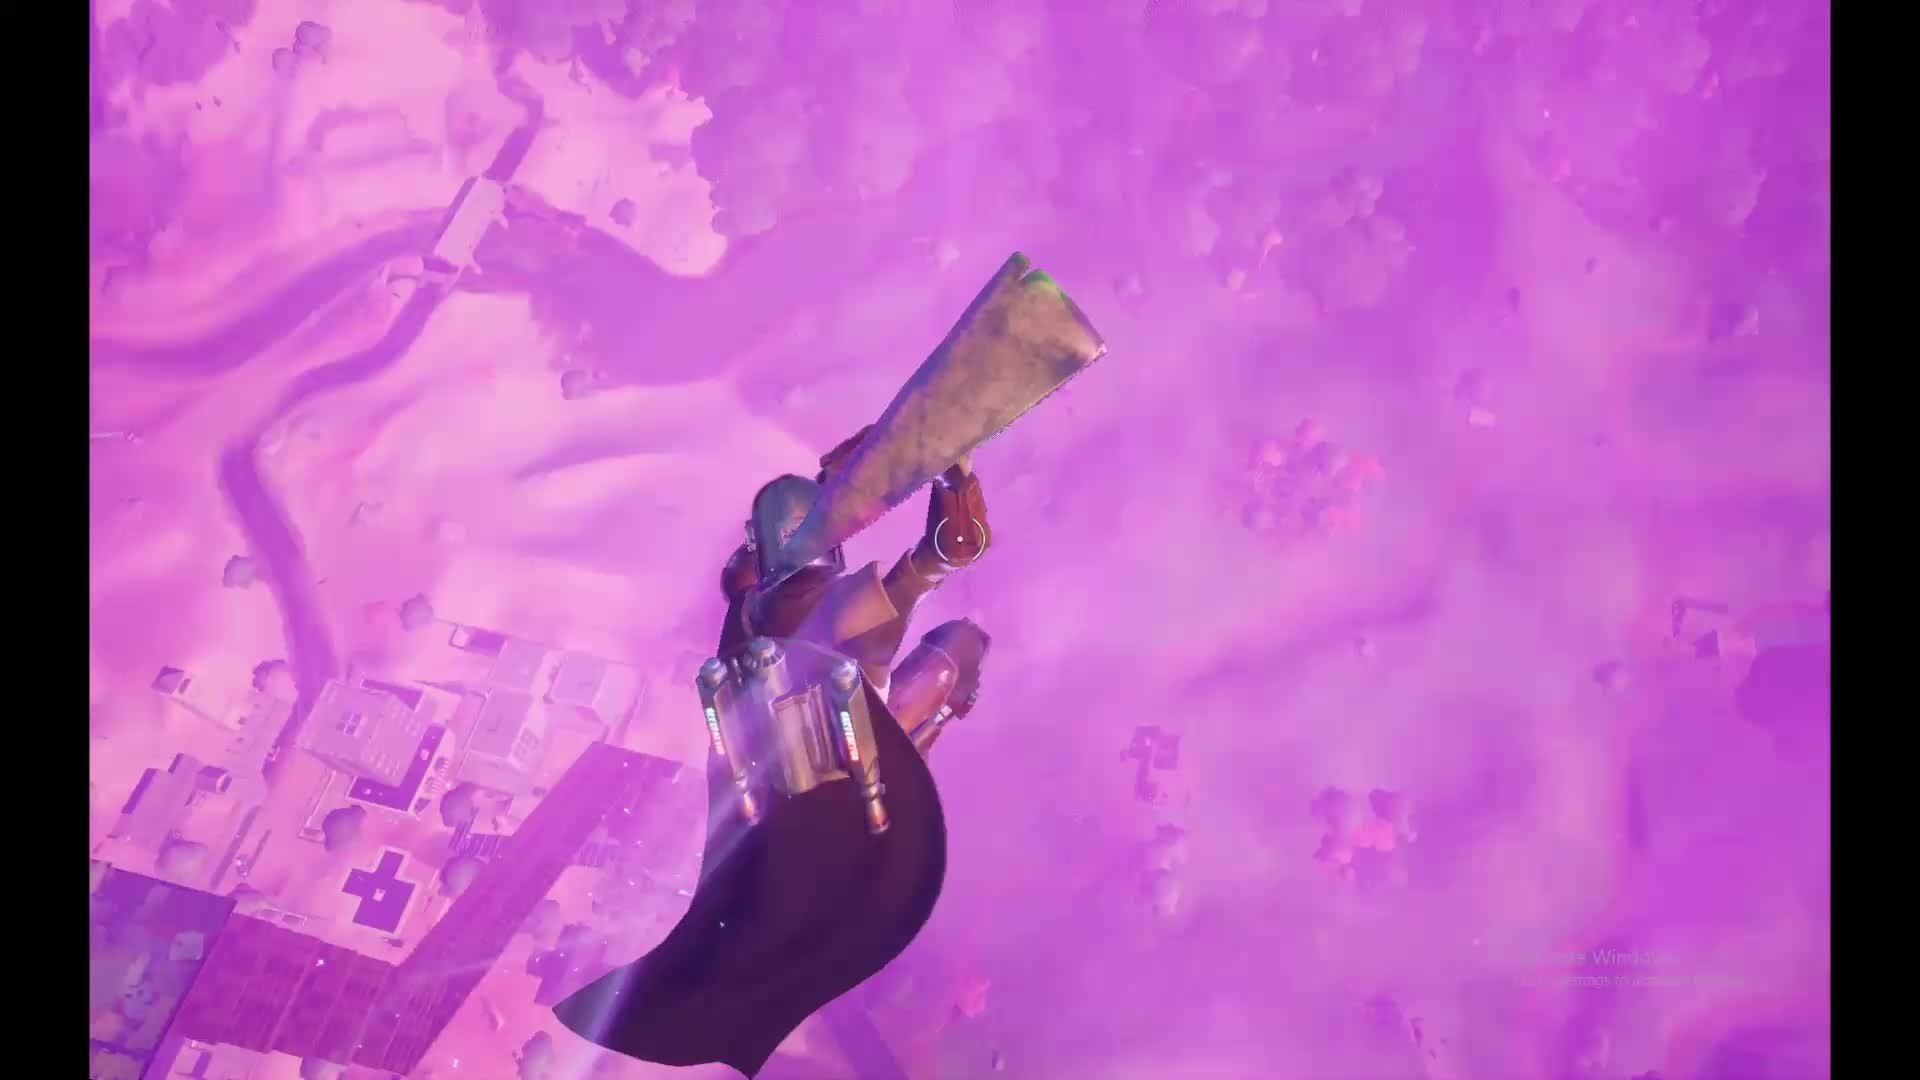 Fortnite: General - My i literally can't hit no scopes, and lil flick at the end video cover image 1